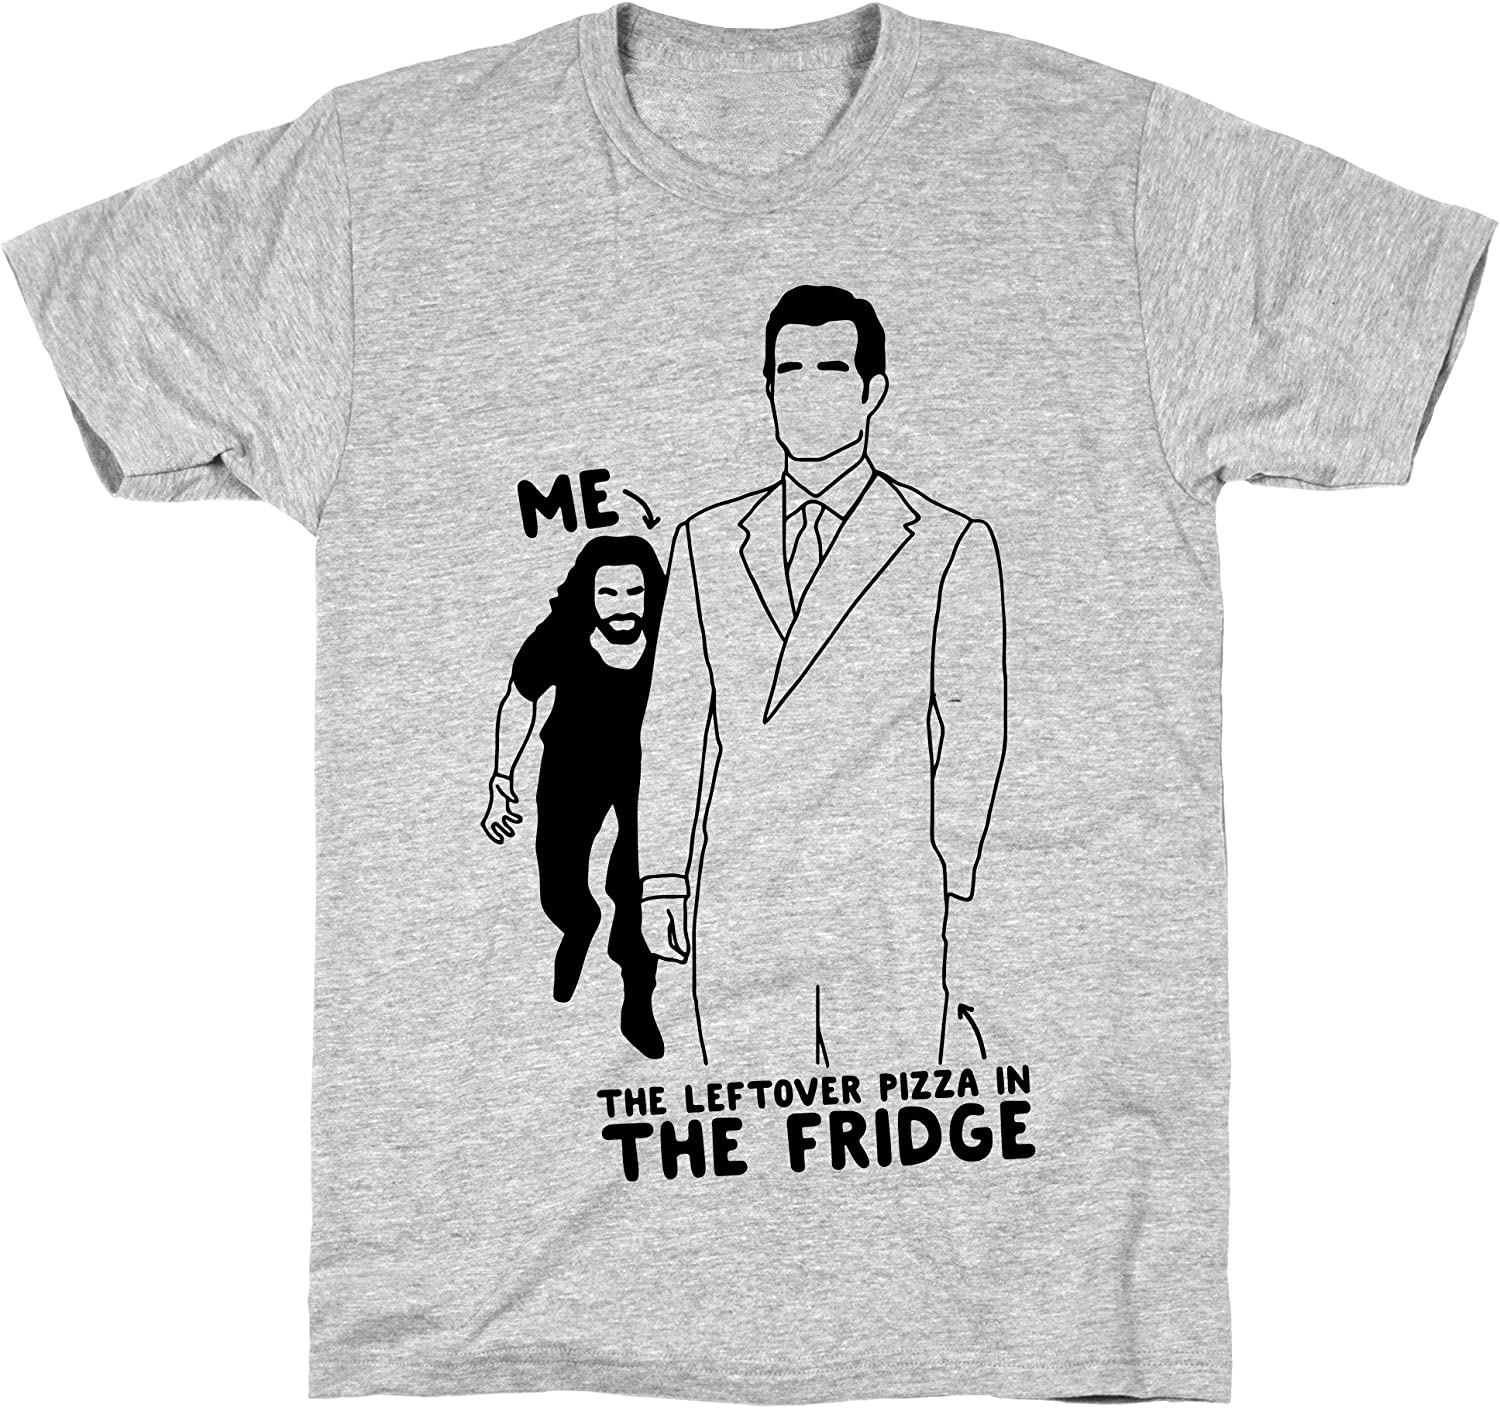 LookHUMAN Me Vs. The Leftover Pizza in The Fridge Athletic Gray Men's Cotton Tee